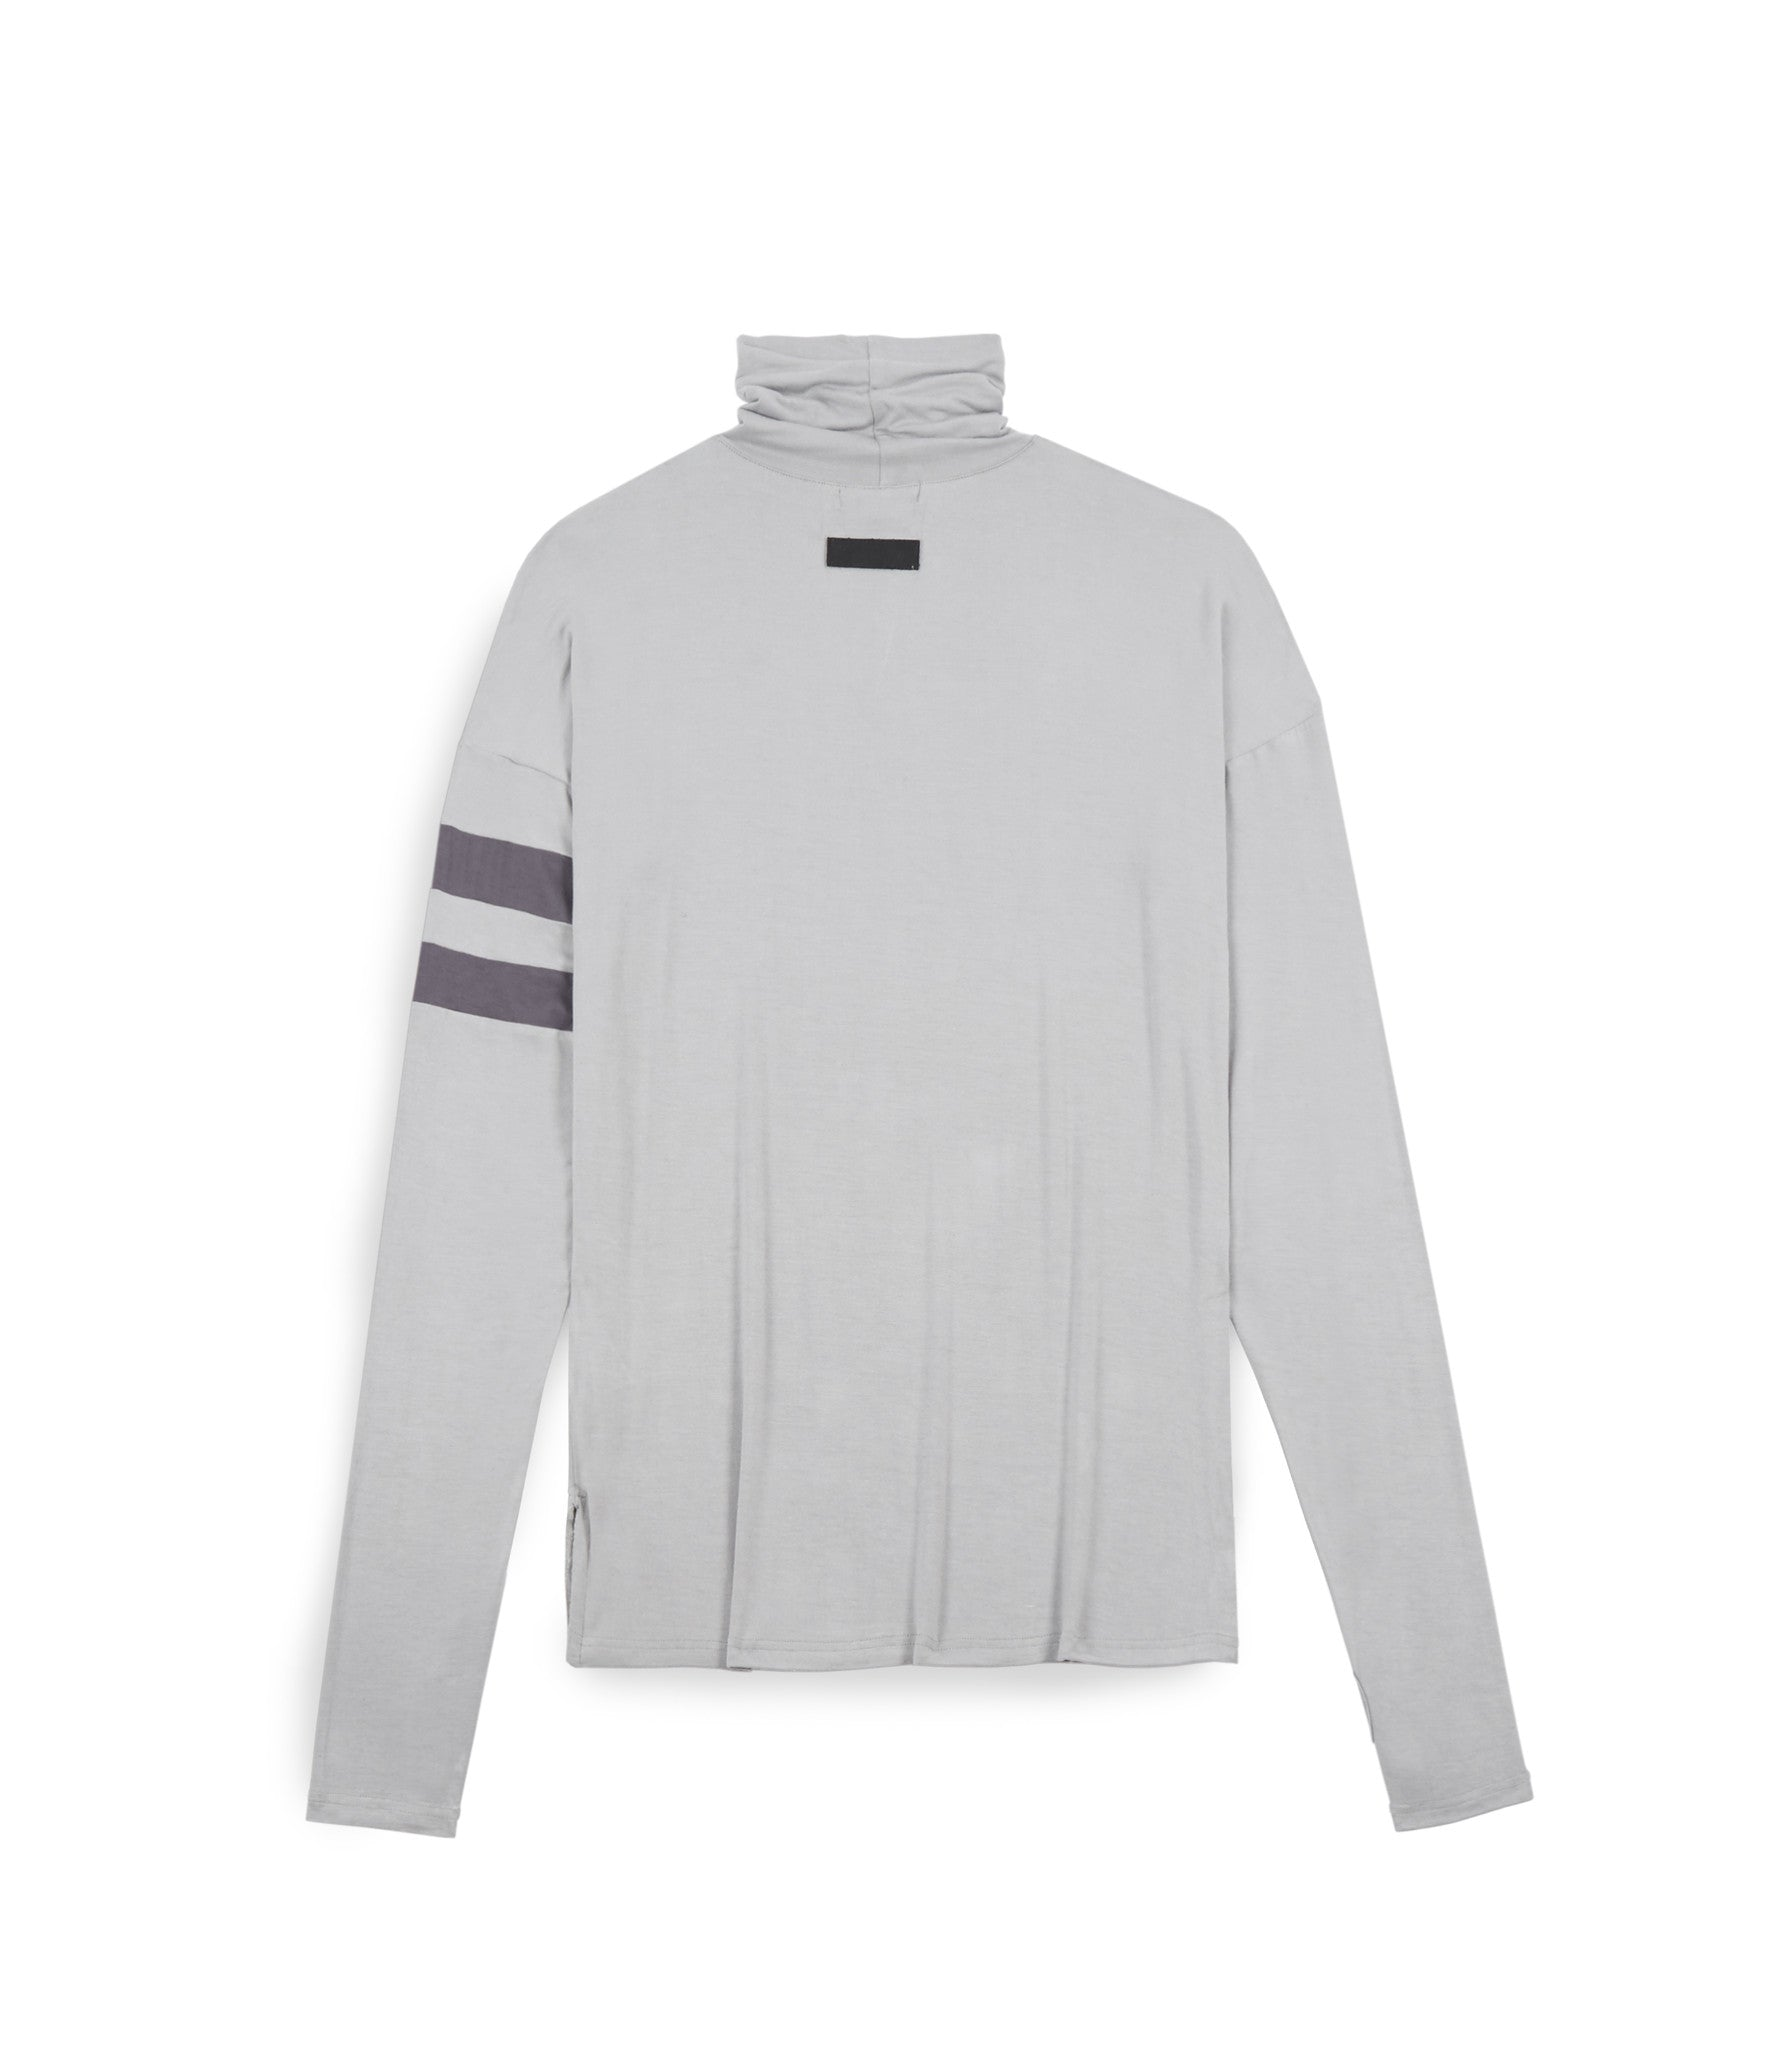 LS105 Roll Neck Under Layer L/S Tee - Ash Grey - underated london - underatedco - 2